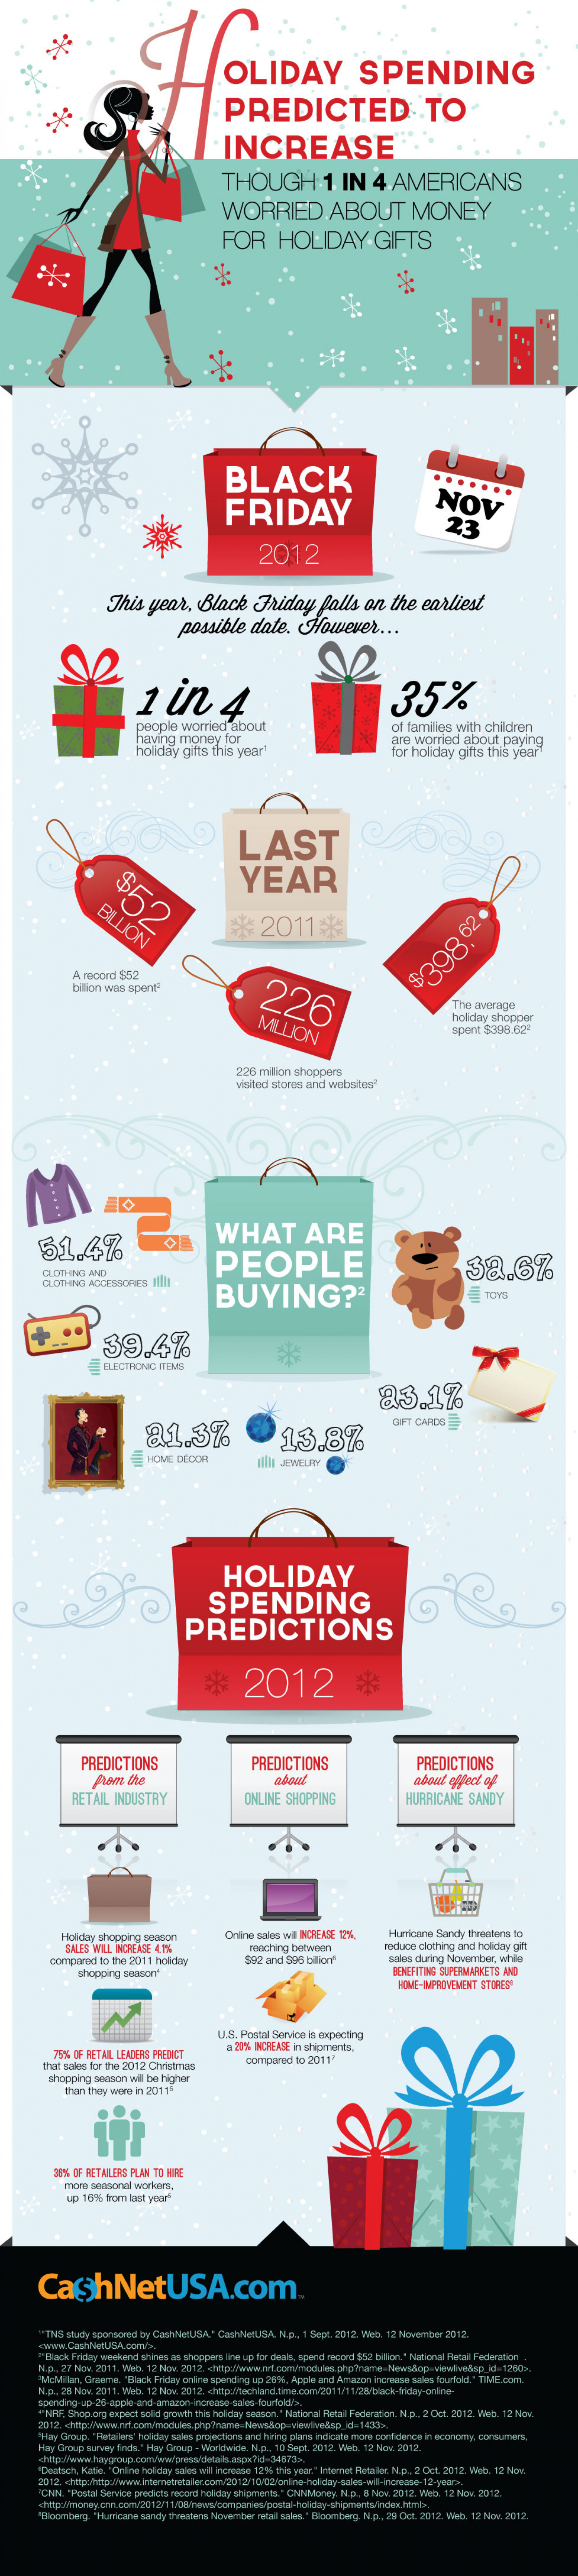 Holiday Spending Predicted to Increase Infographic